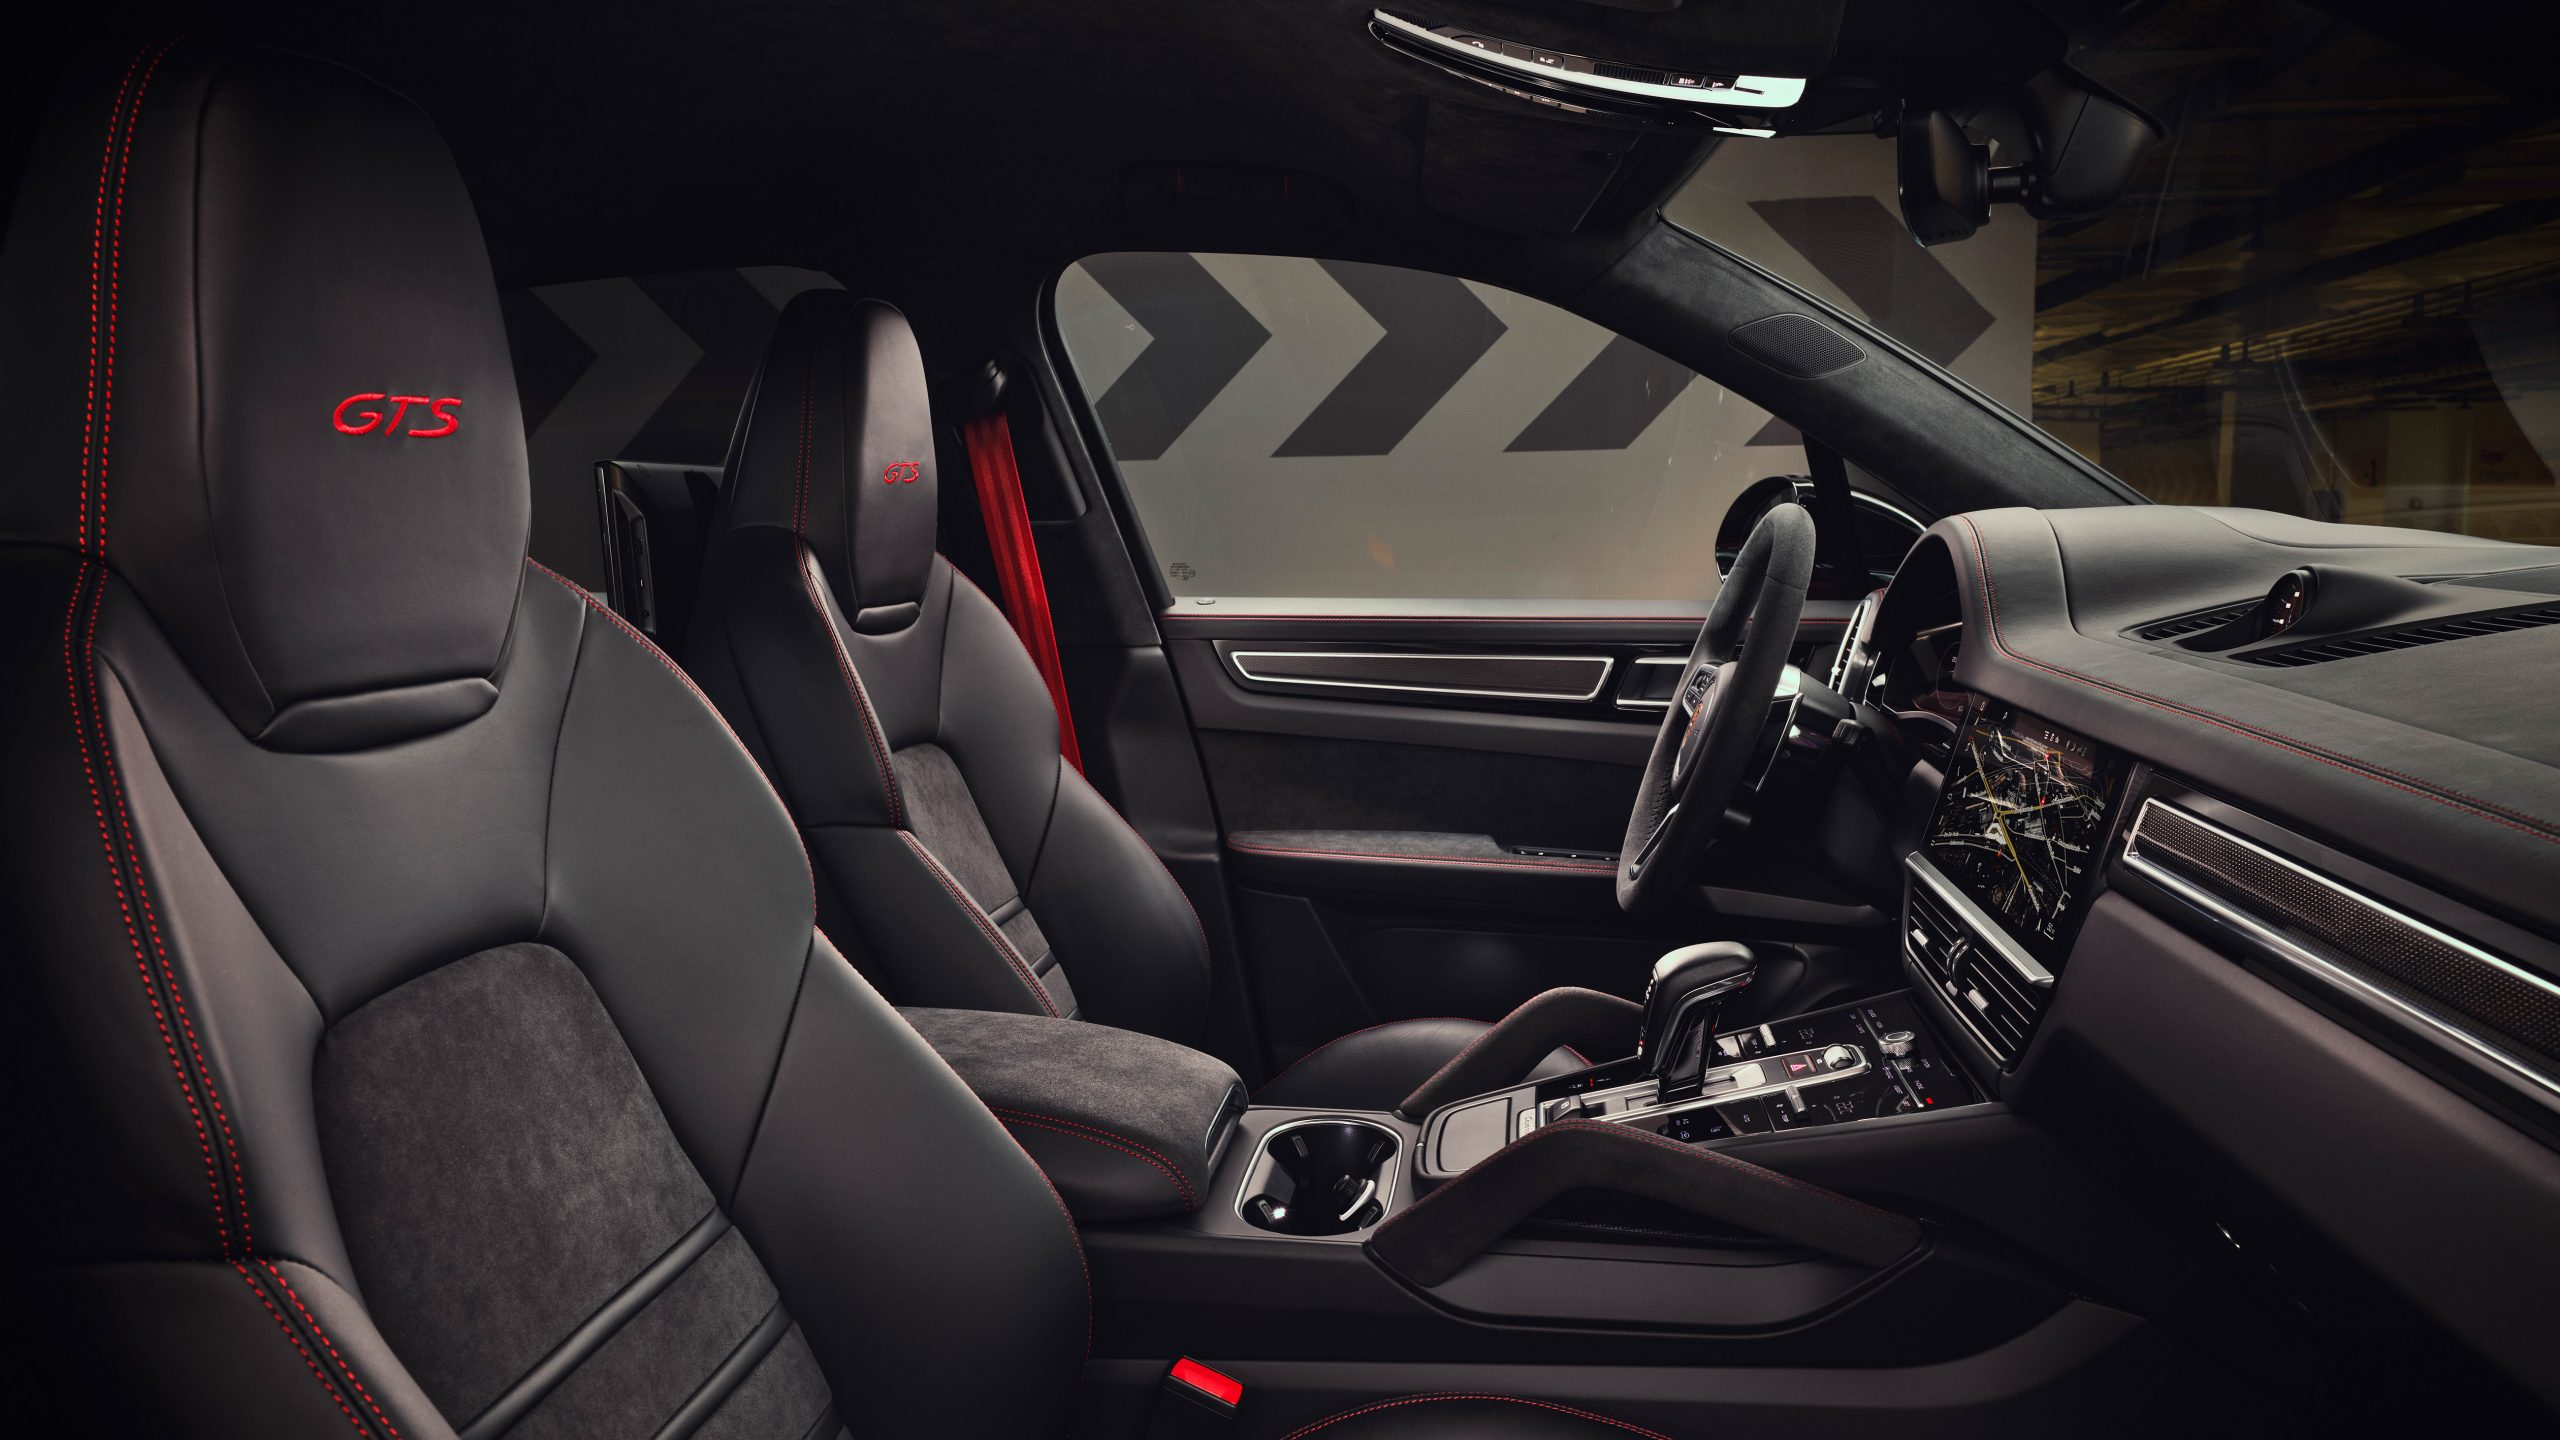 2020 Porsche Cayenne GTS Front Interior Side View